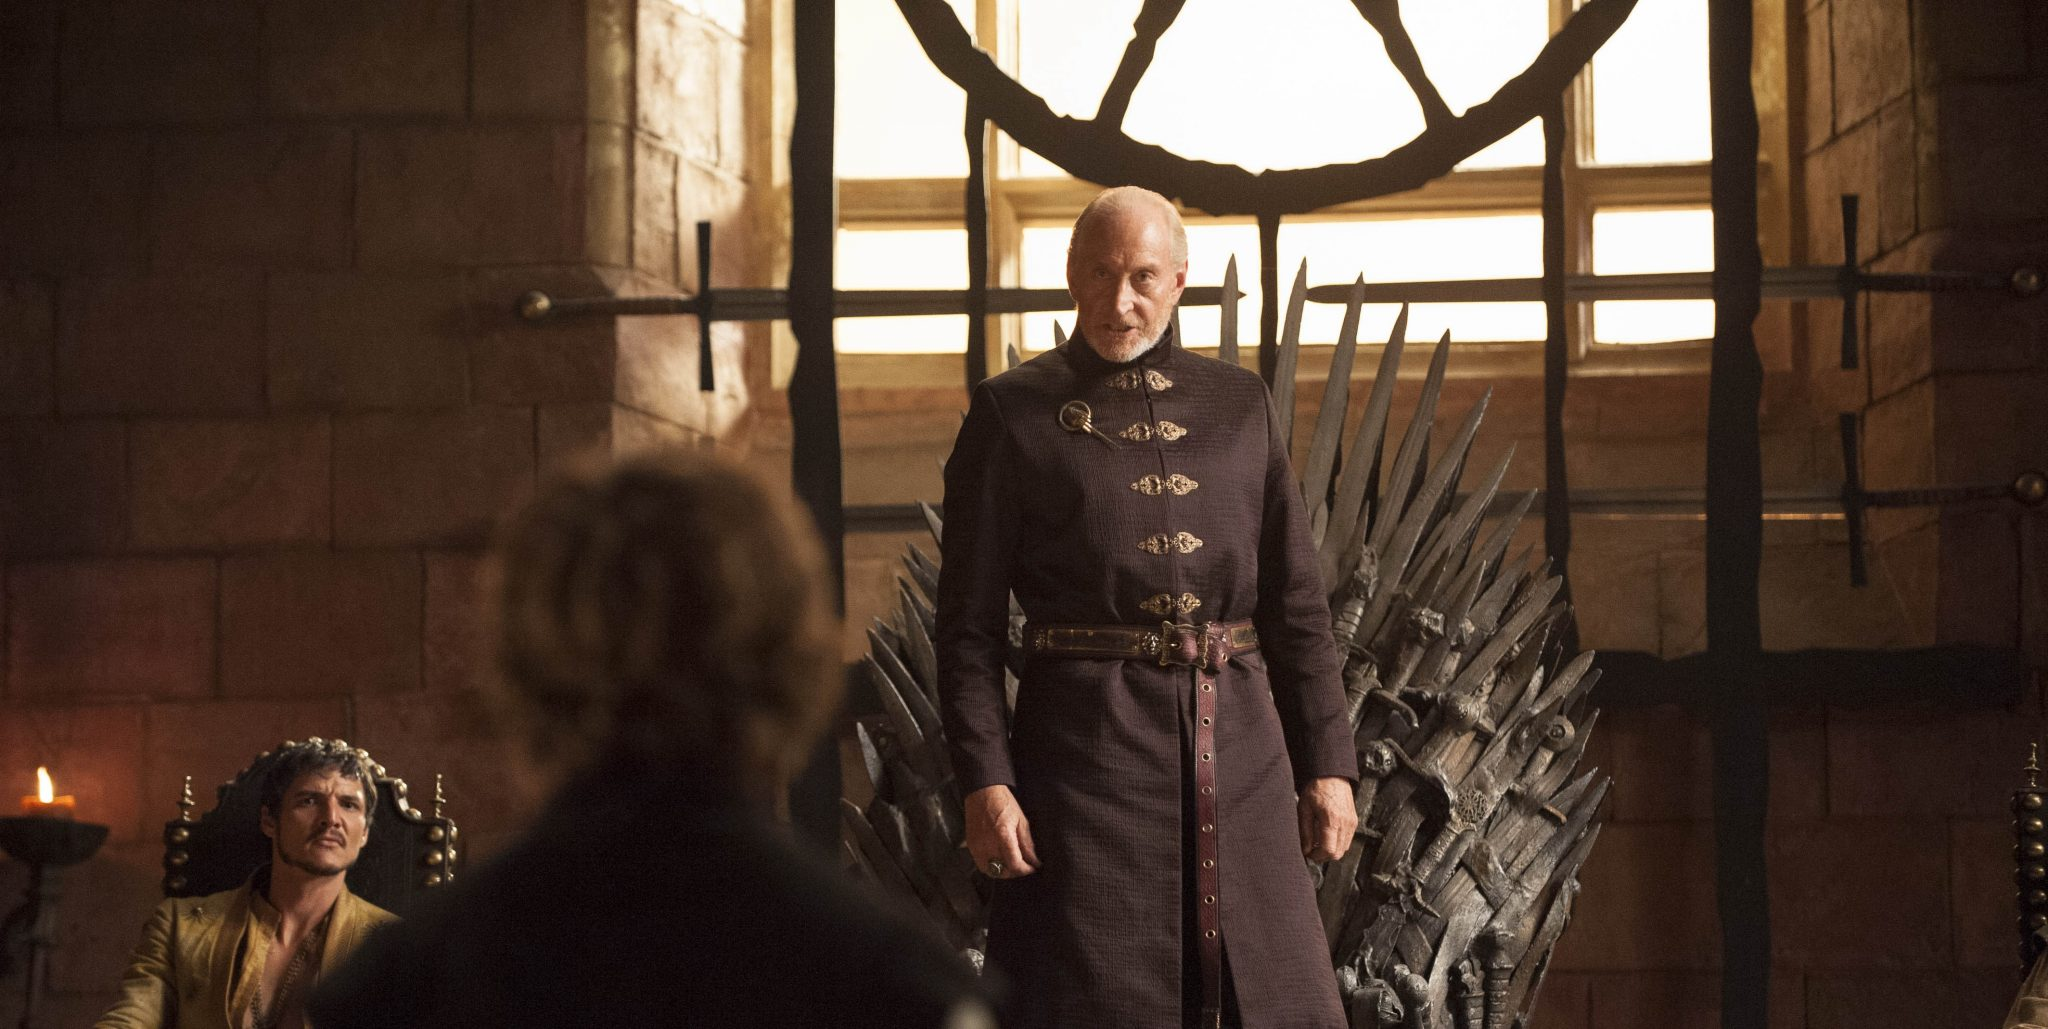 Tyrion-and-Tywin-Lannister-tyrion-lannister-37085306-4256-2832